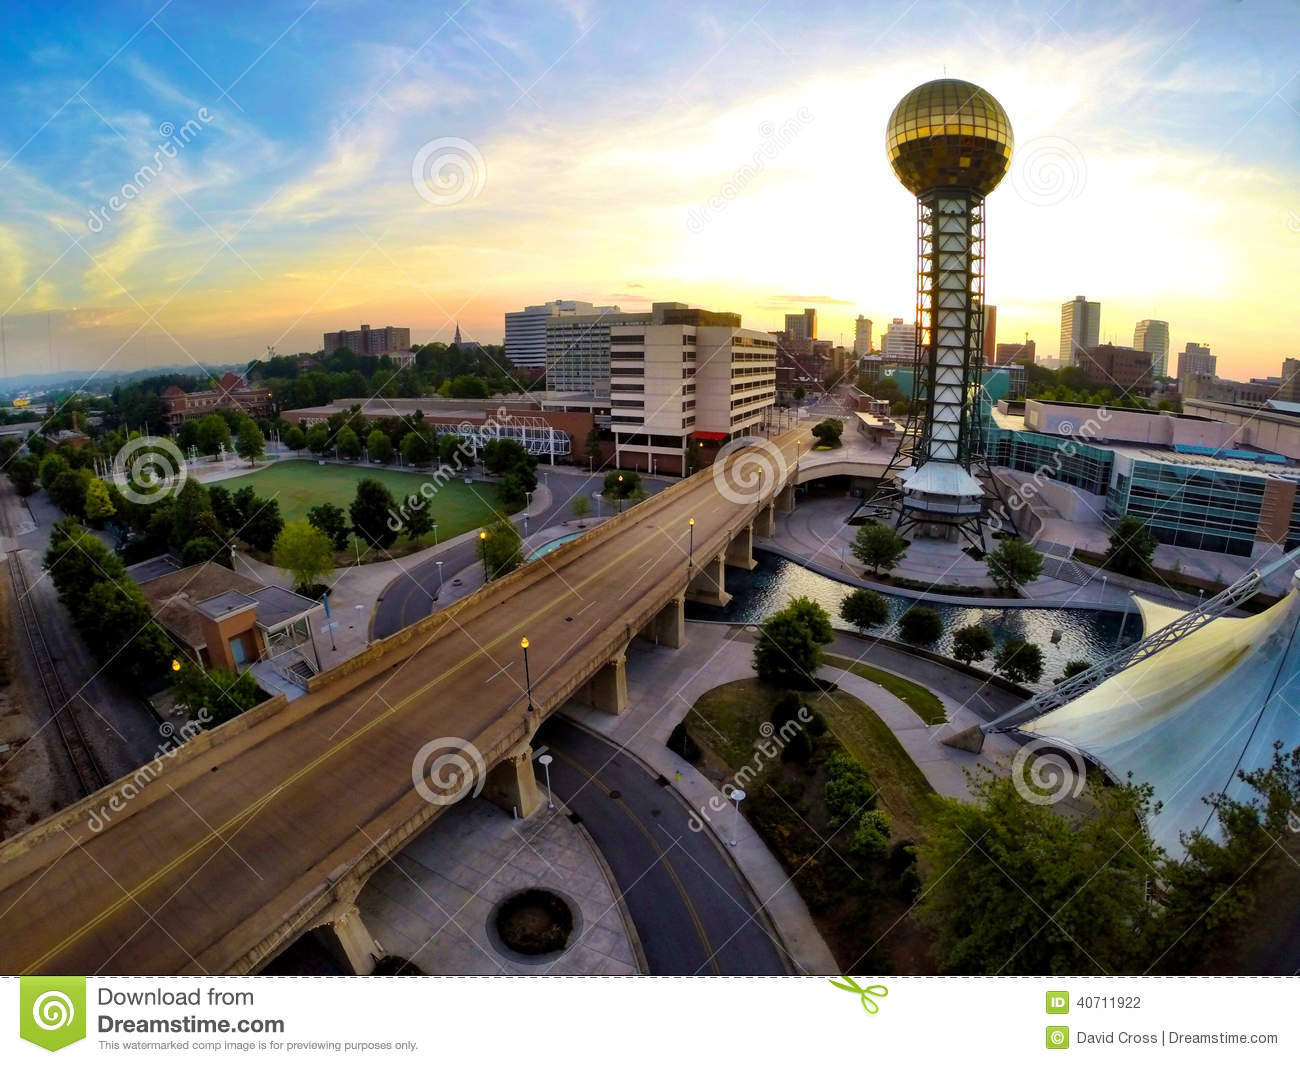 image httpthumbsdreamstimecomzworlds fair park knoxville tn aerial view world s 40711922jpg